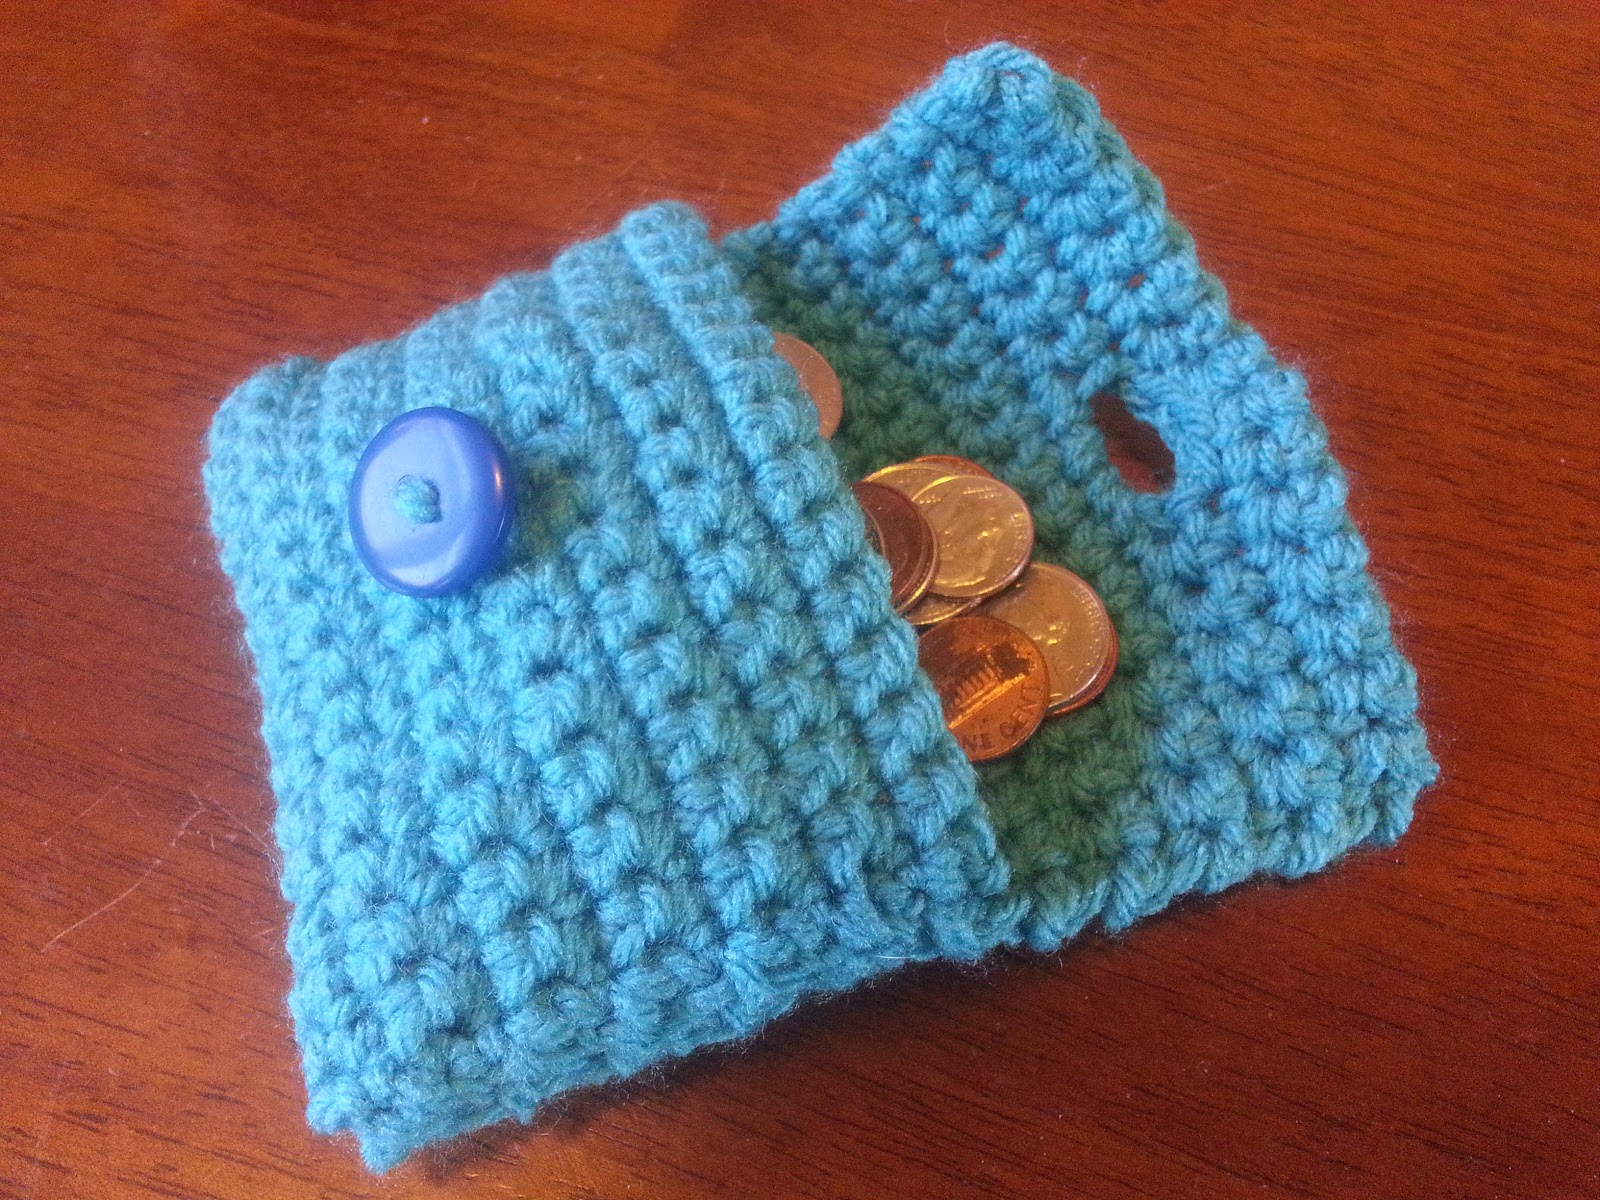 Crochet Coin Purse Pattern : Crochet Coin Purse Pattern 2017 - 2018 Best Cars Reviews